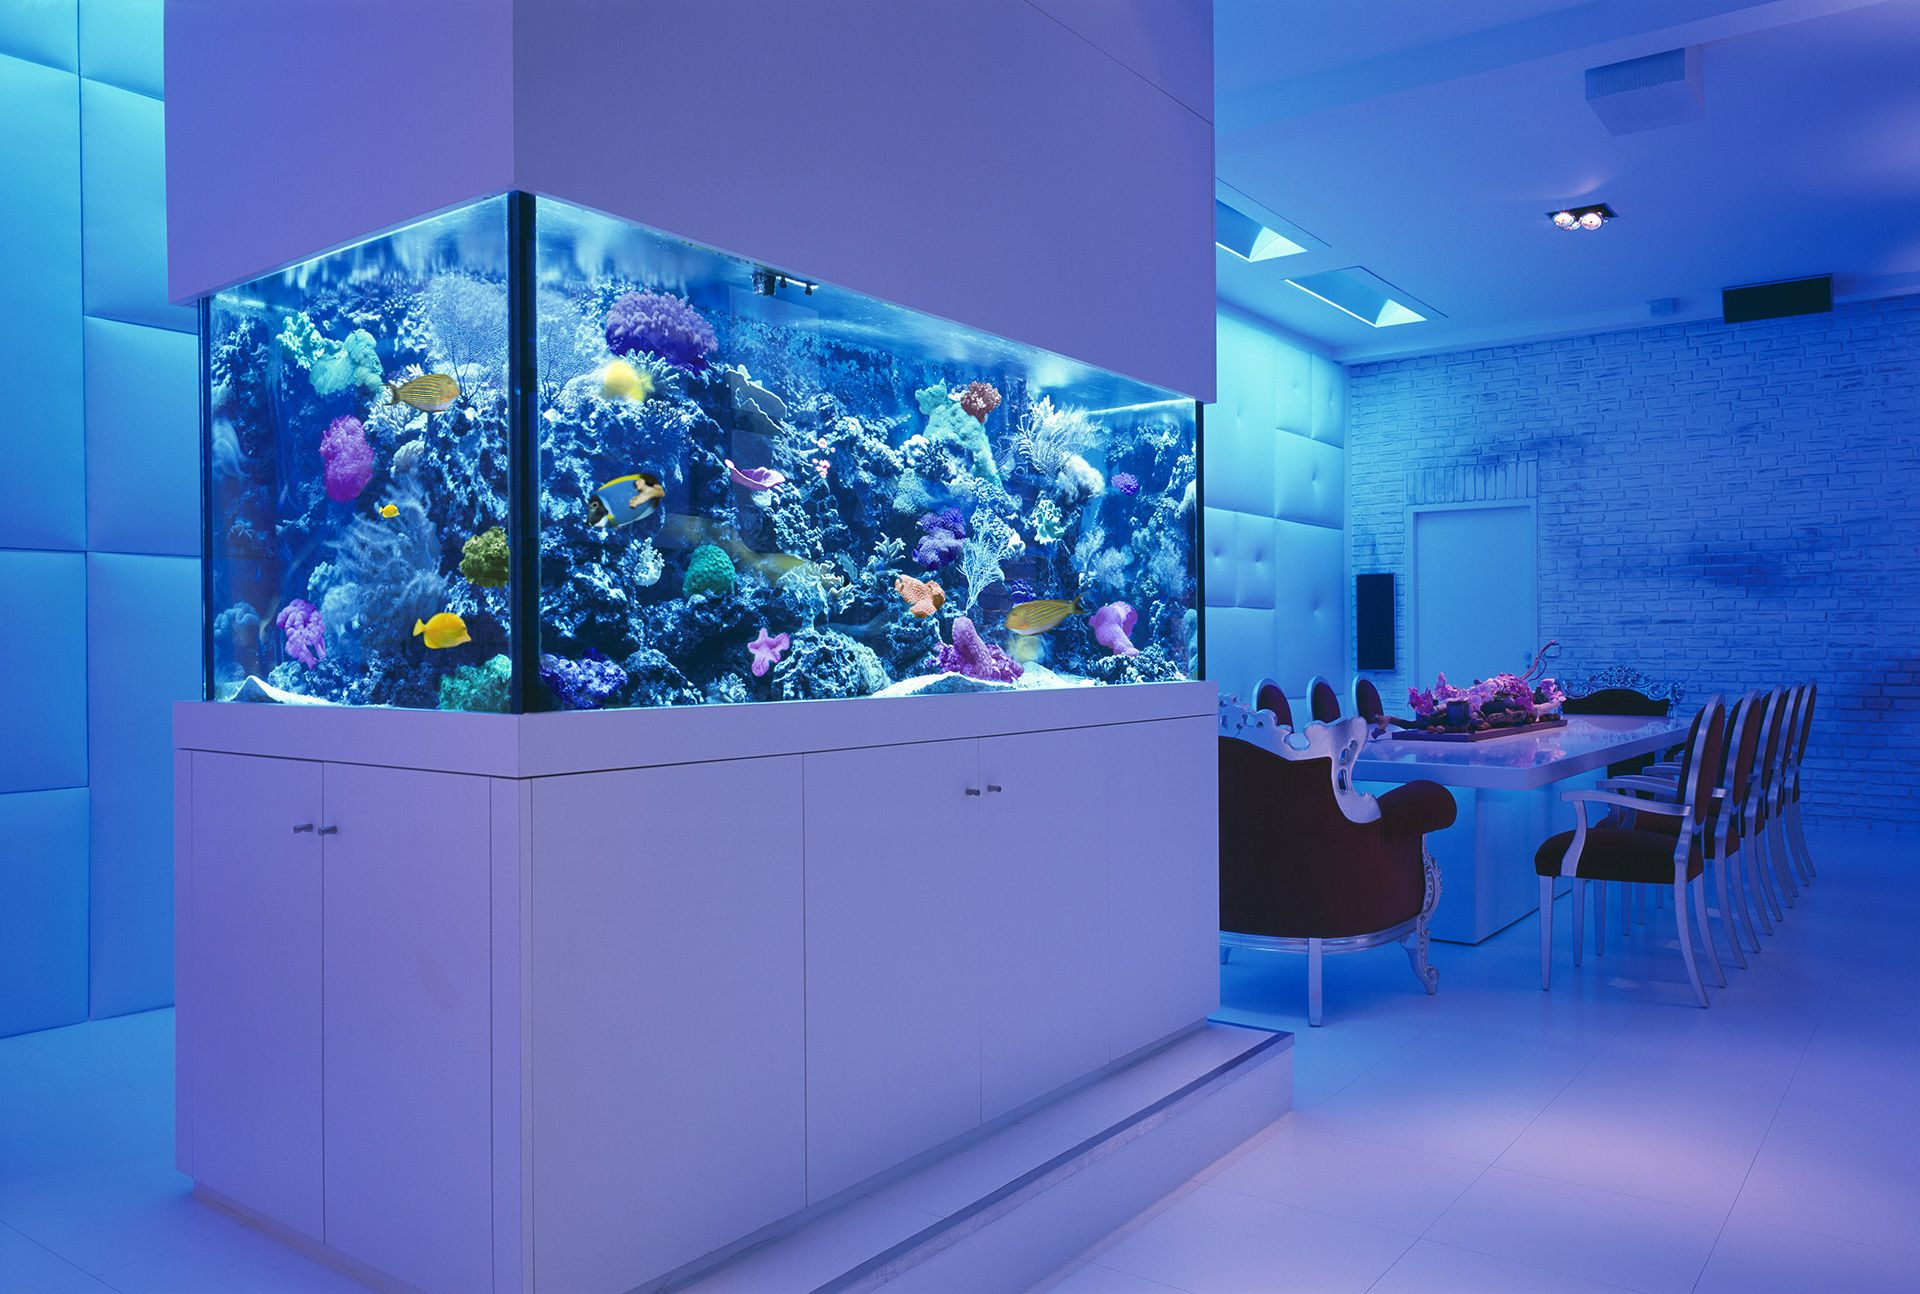 Best coral reef aquariums for homes & offices Germany